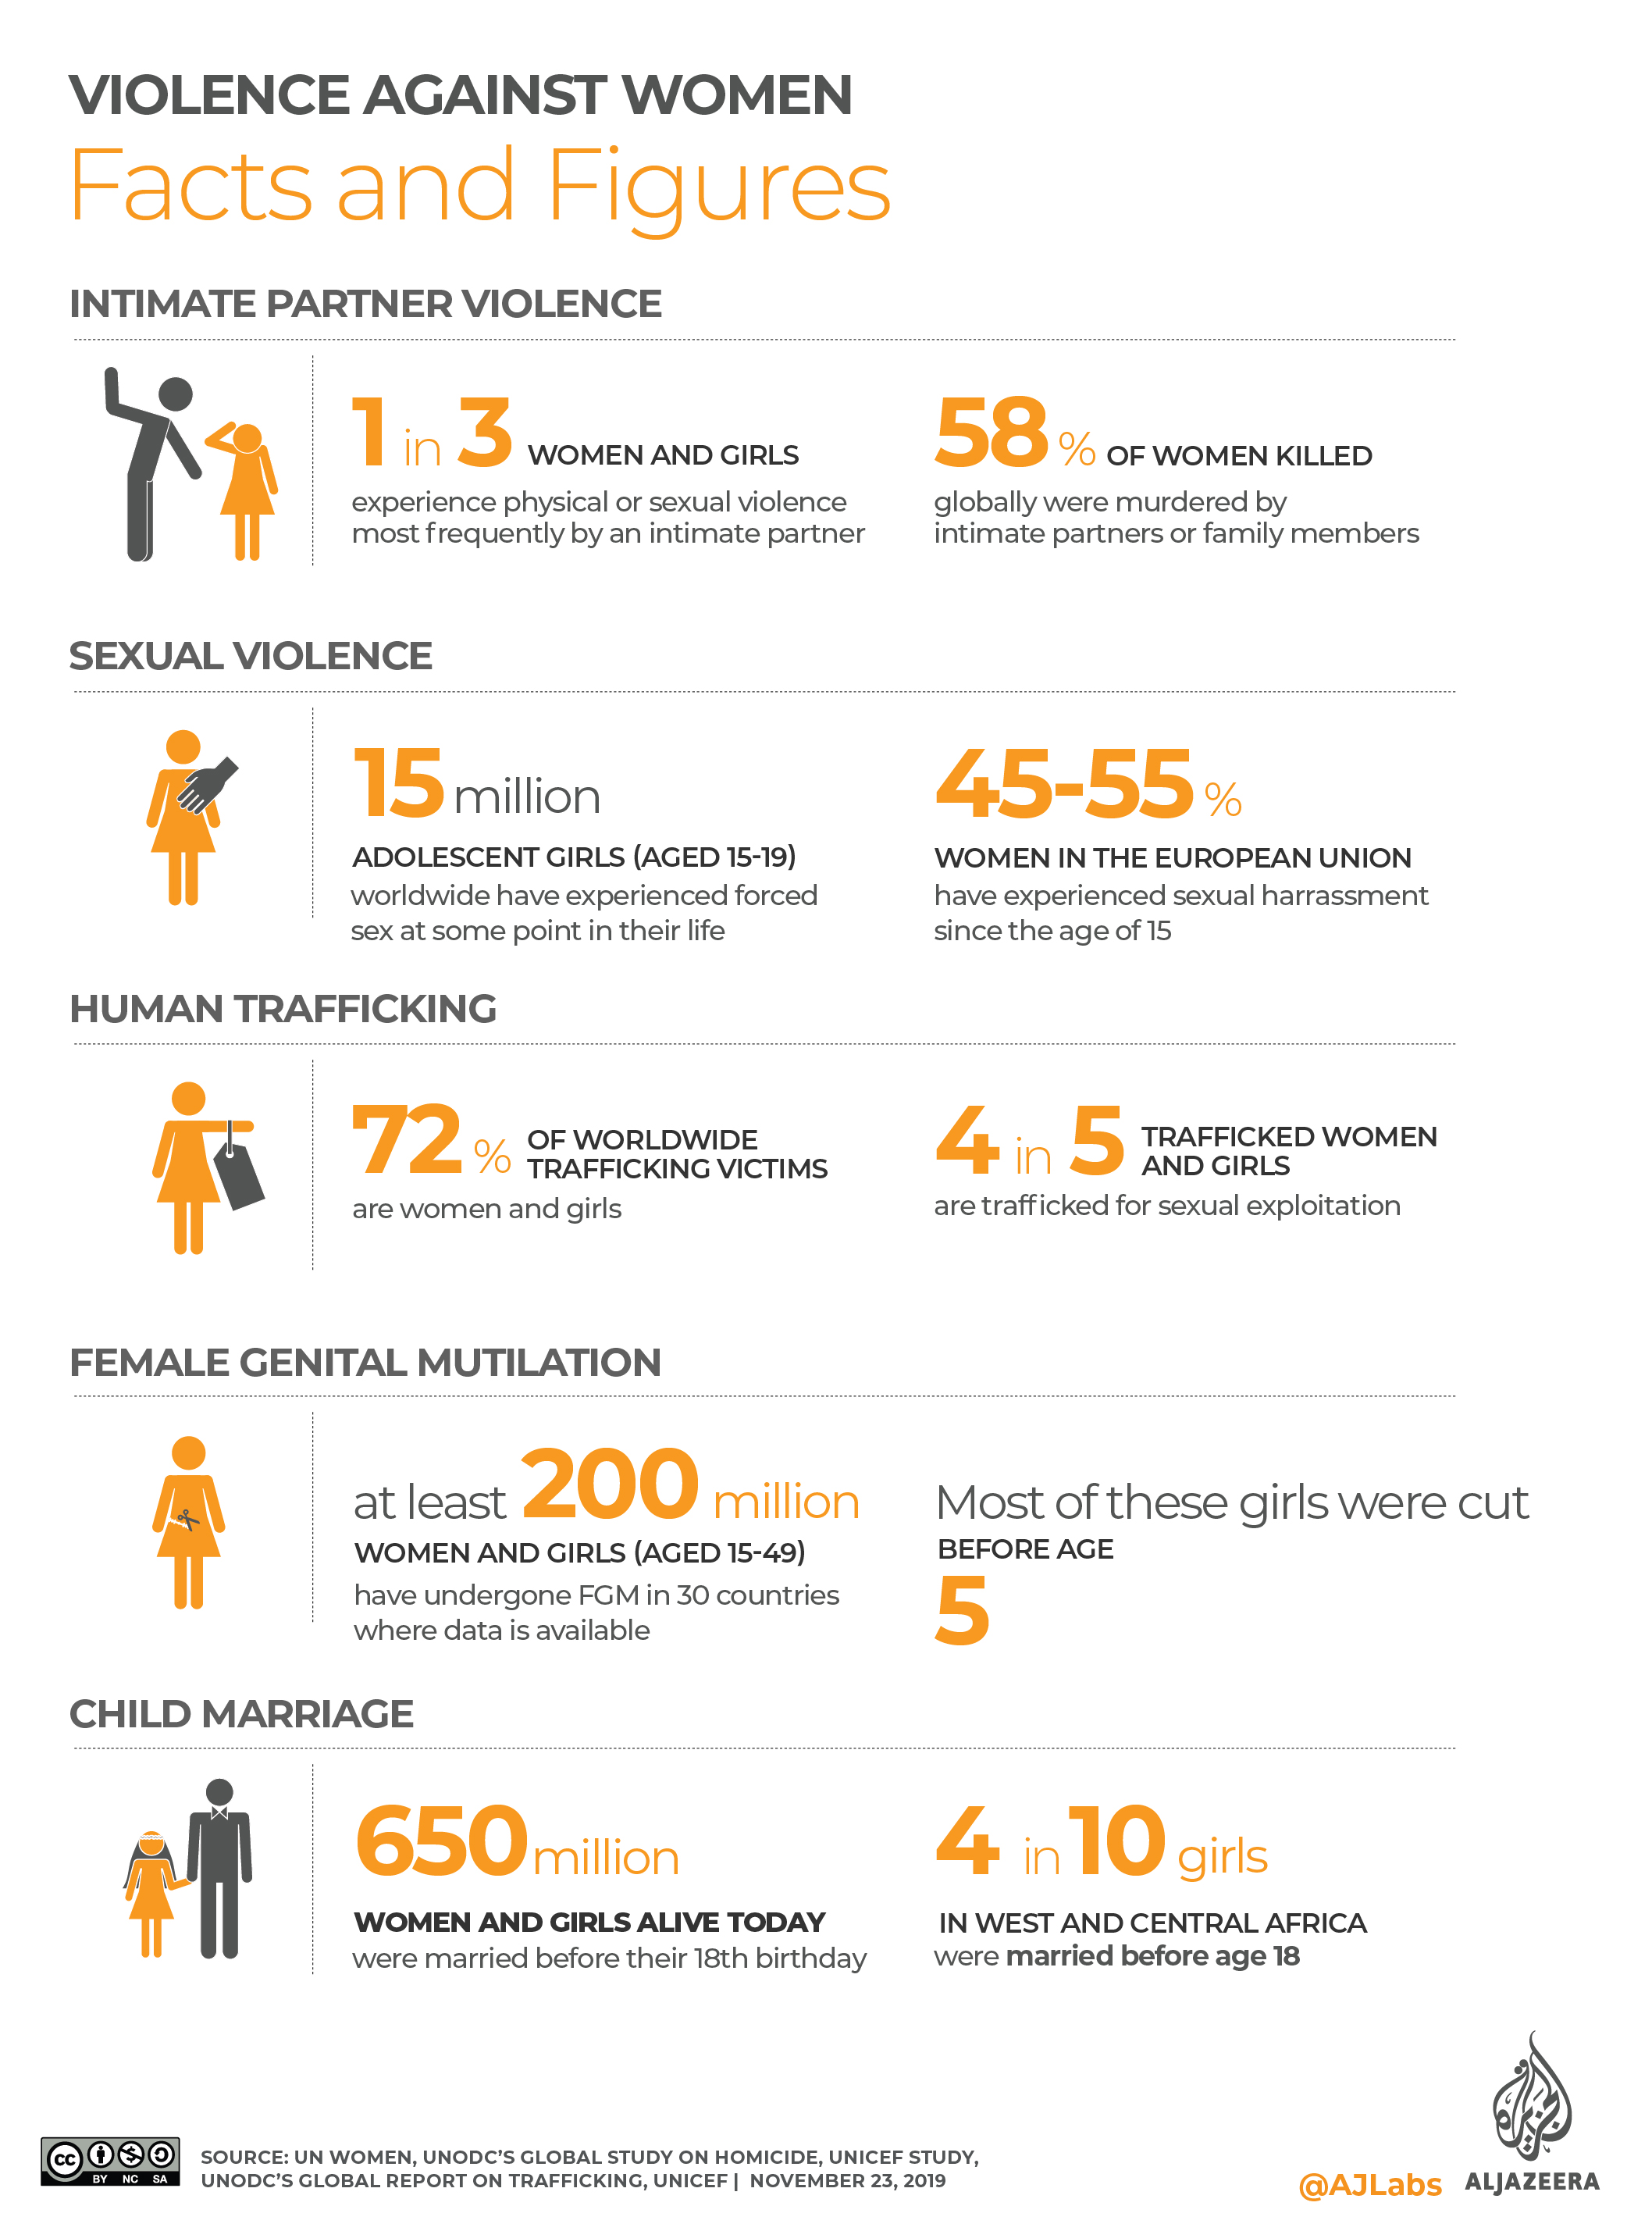 INTERACTIVE: France violence against women graphic